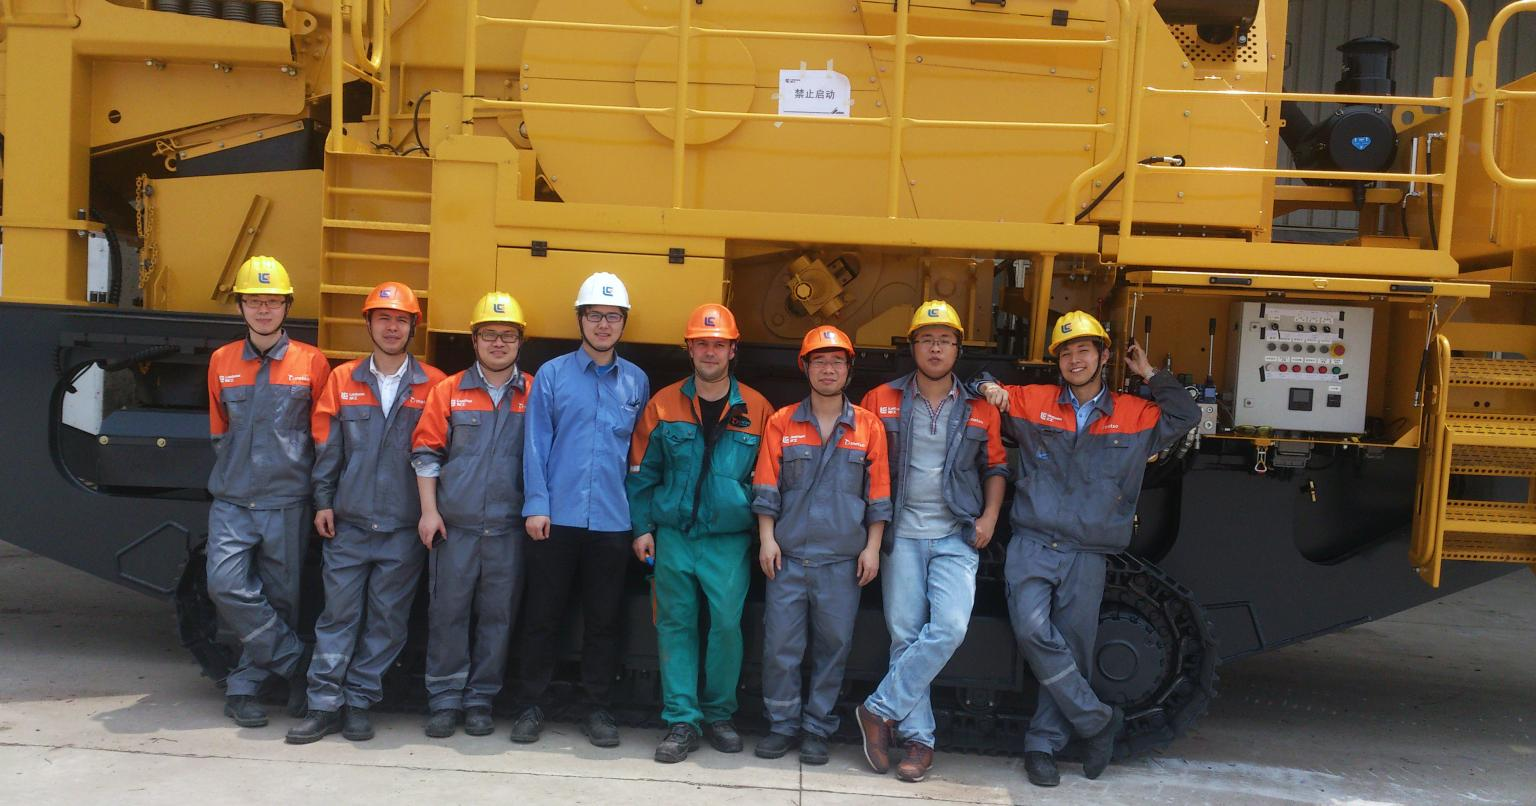 LiuGong Metso Construction Equipment (Shanghai) Co., Ltd. has launched its first prototype track-mounted mobile crushing and screening equipment